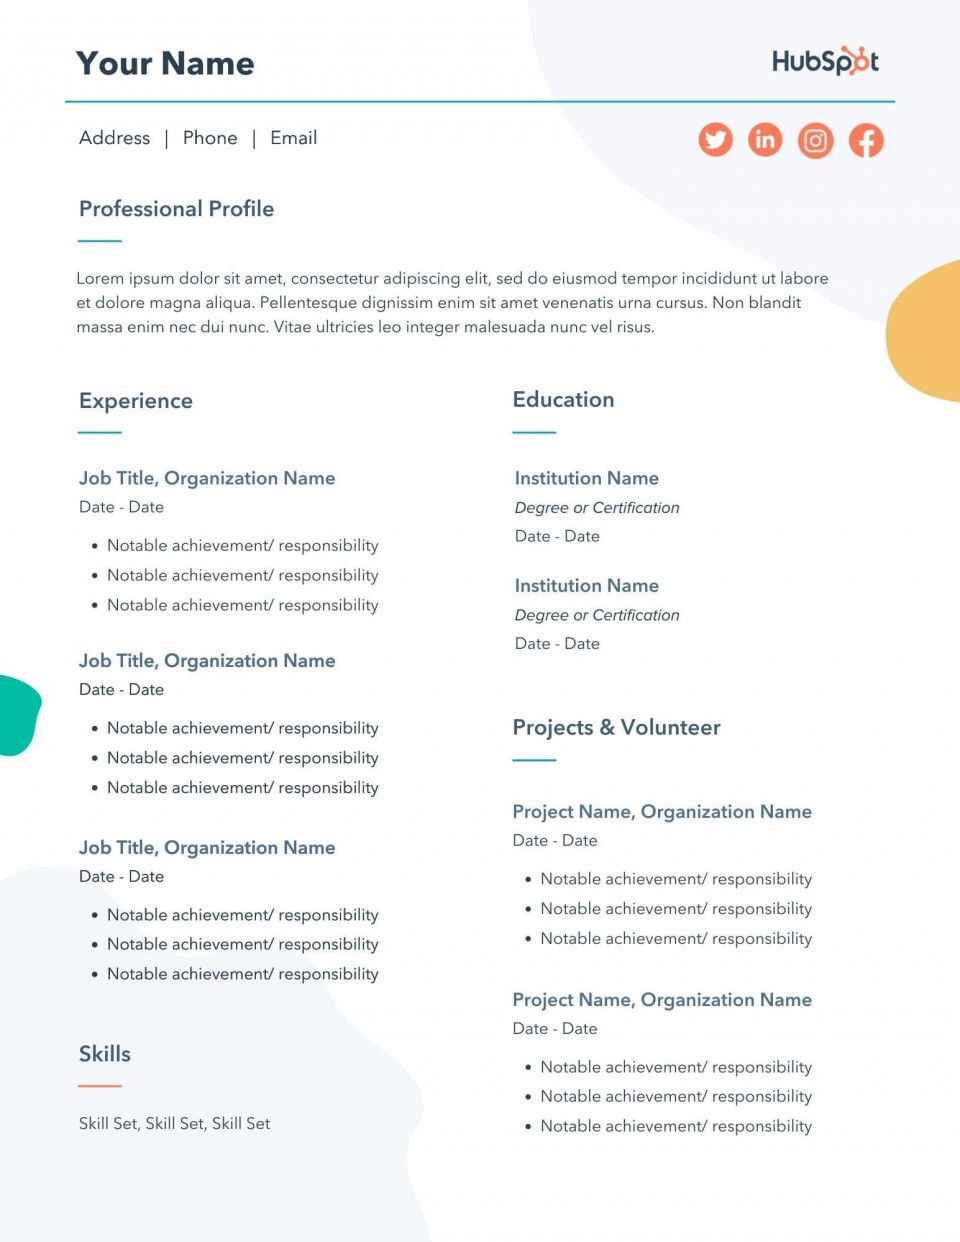 004 Top Resume Template For First Job Image  After College Sample Student Teenager960